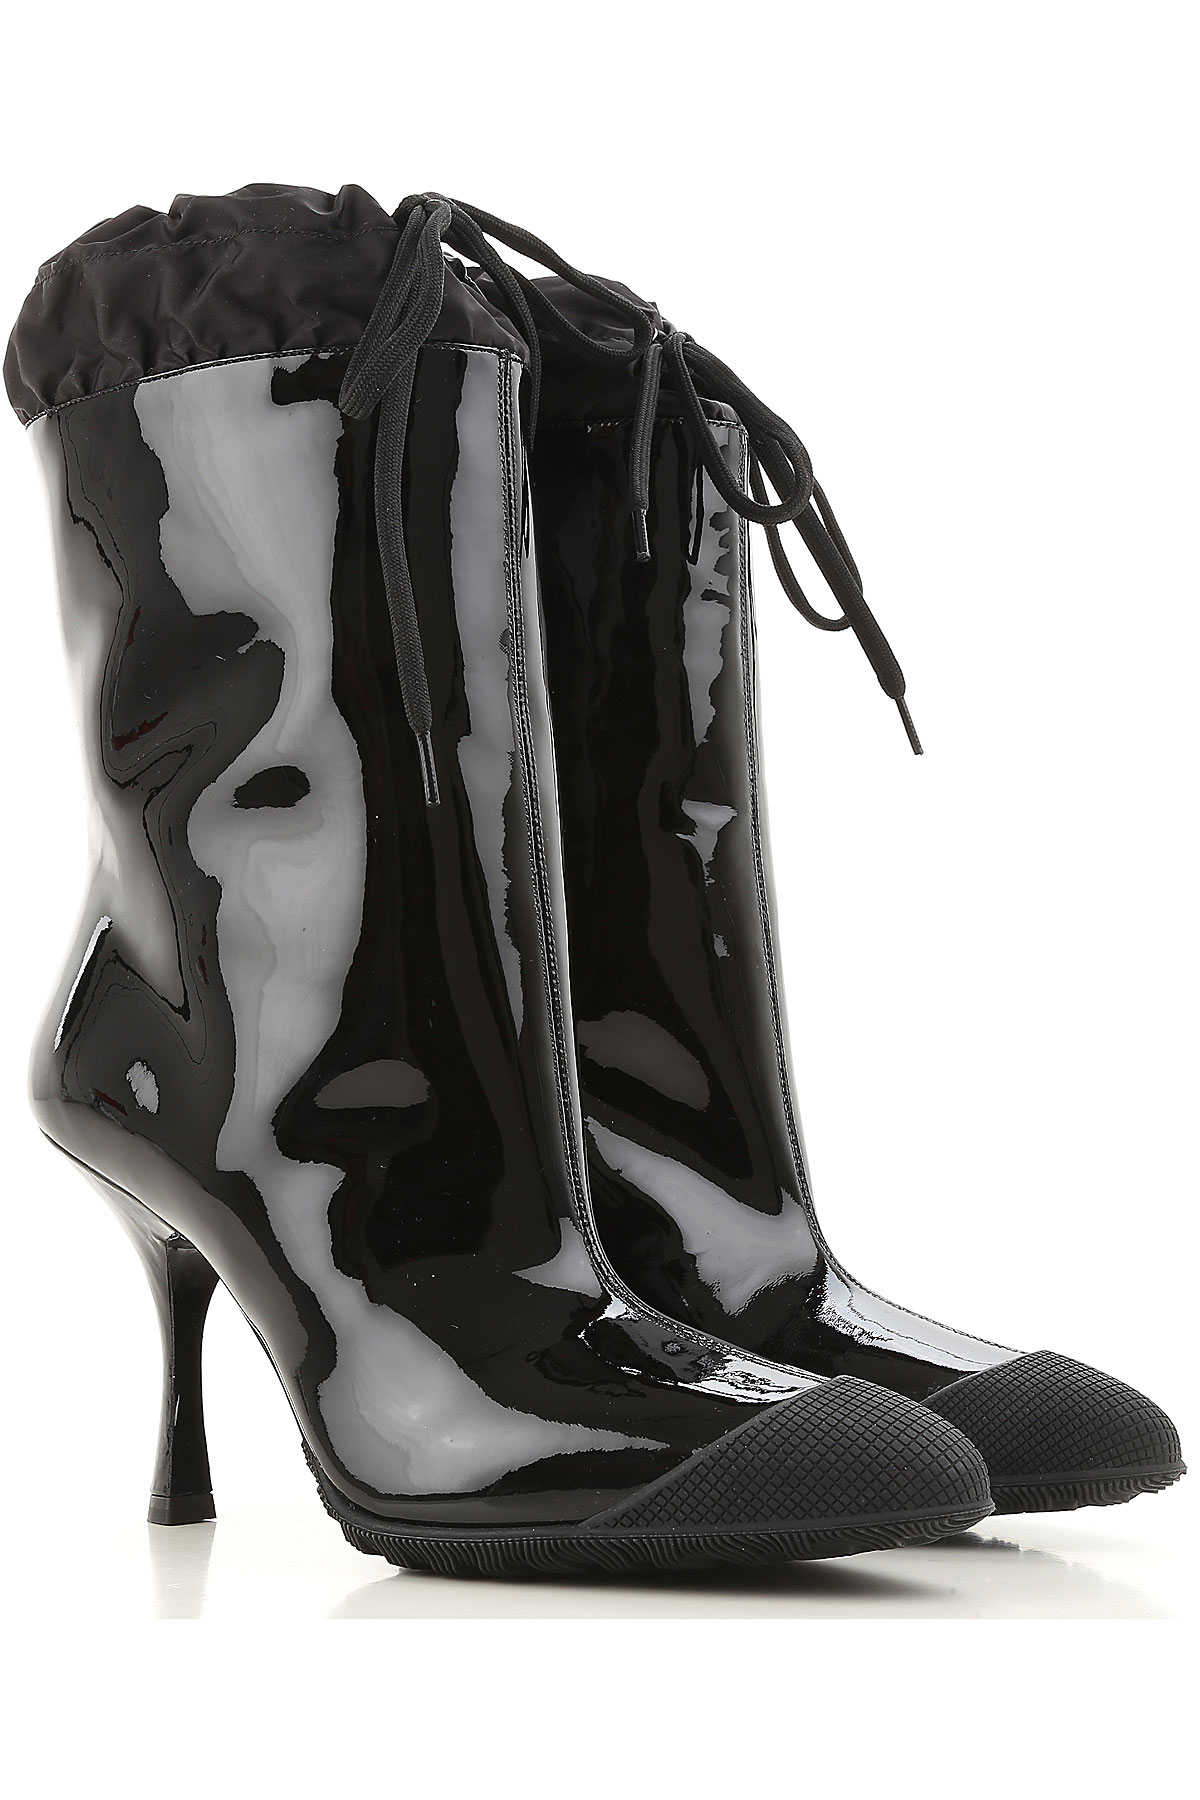 Miu Miu Boots for Women, Booties On Sale in Outlet, Black, Patent, 2019, 10 11 8